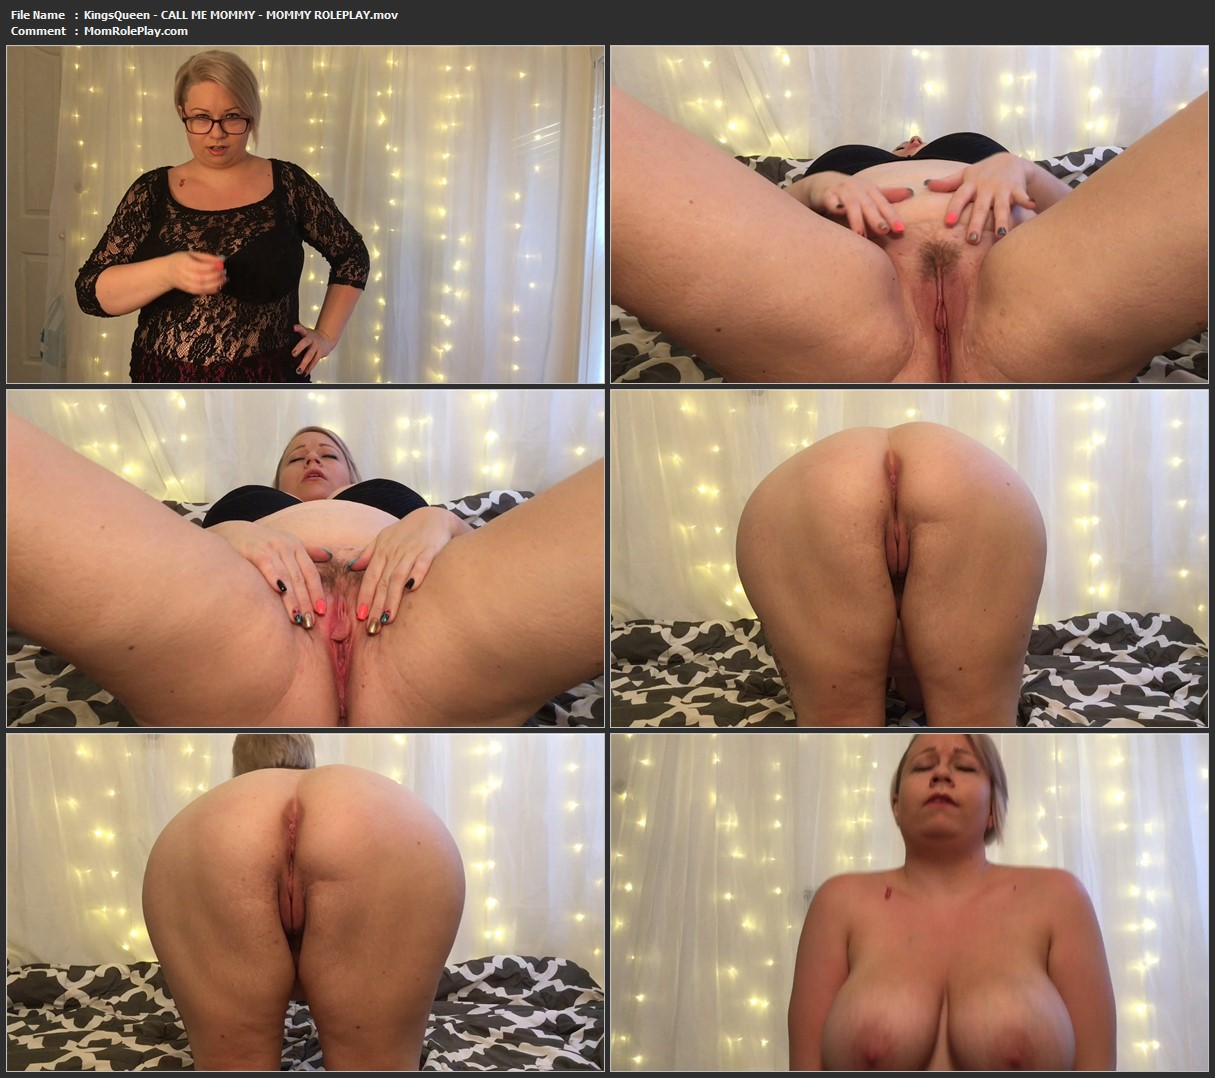 Kings Queen - Call Me Mommy - Mommy Roleplay